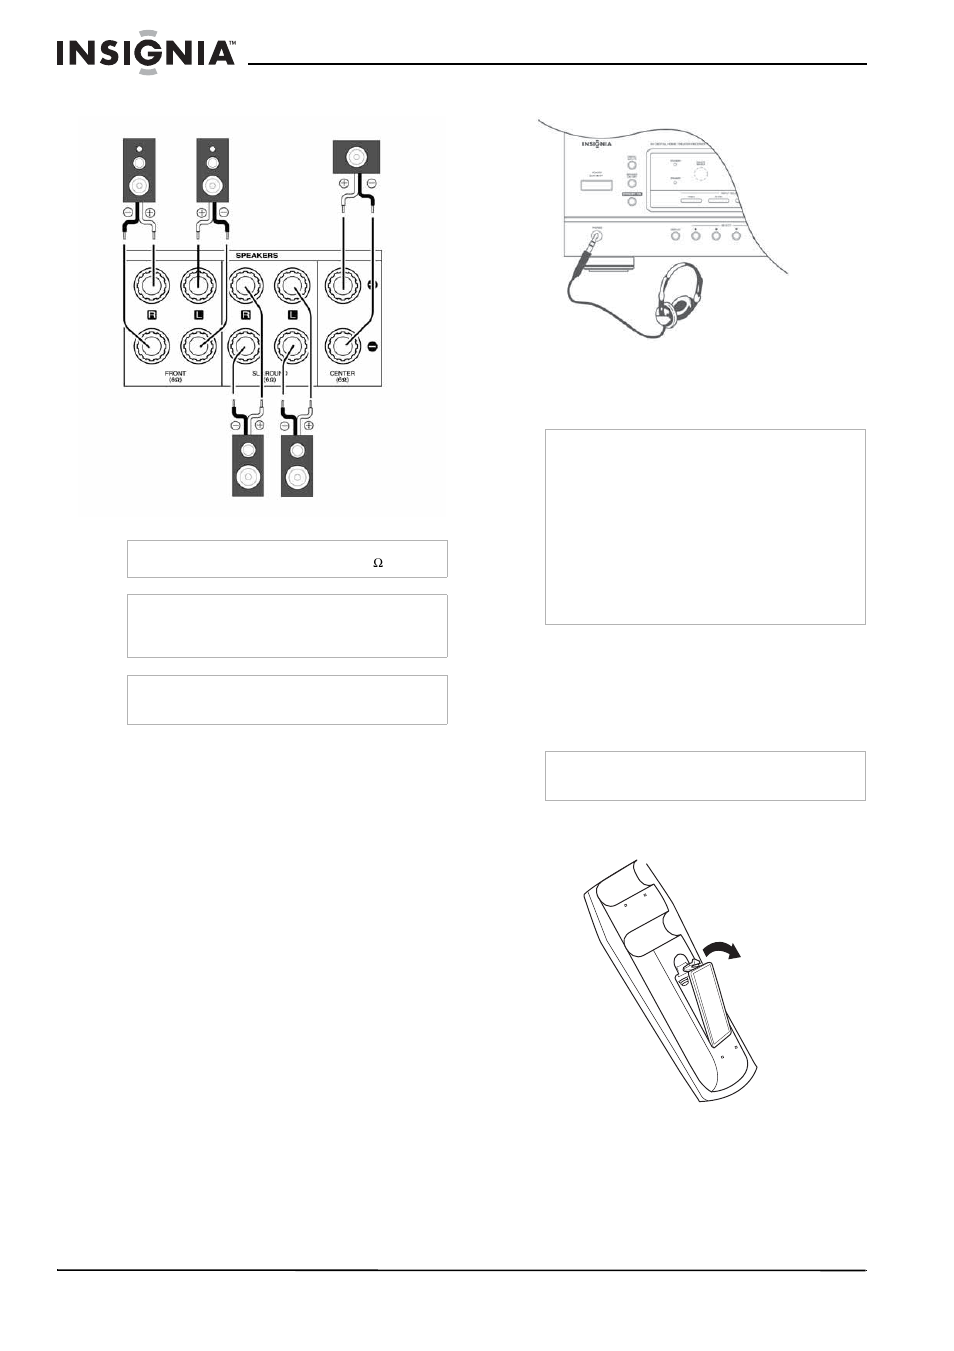 Connecting speakers connecting headphones connecting the power connecting speakers connecting headphones connecting the power insignia ns r5100 user manual page 10 76 sciox Gallery